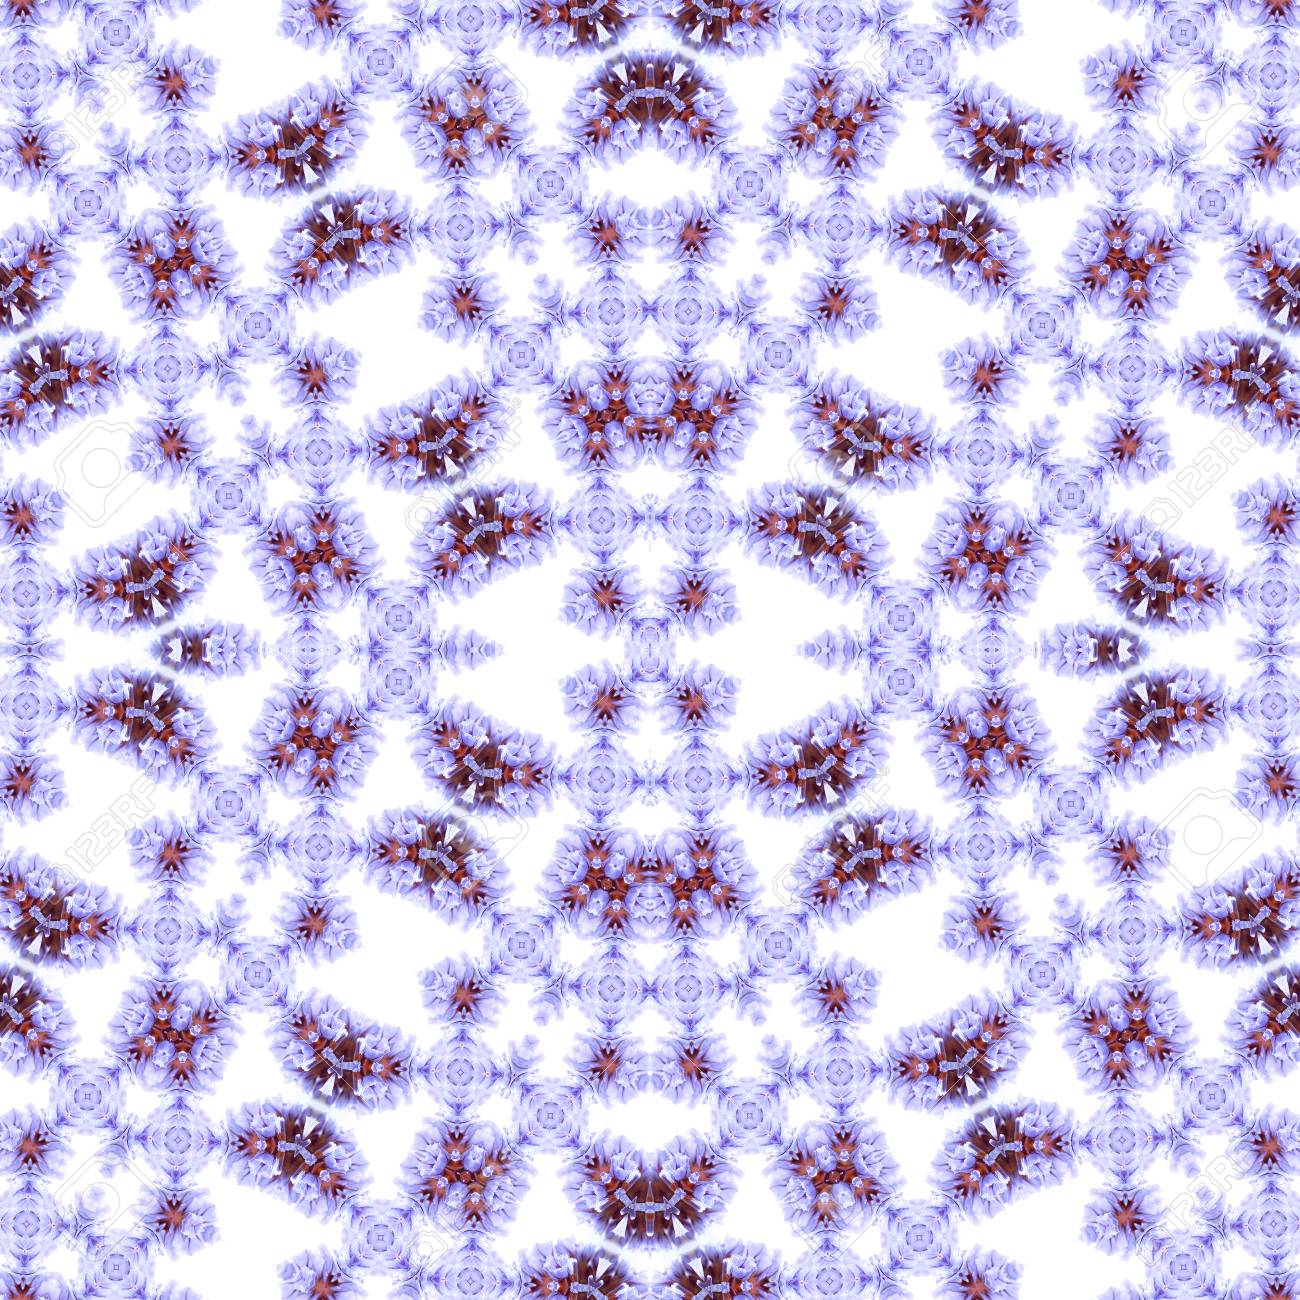 Abstract flowers seamless pattern background. Kaleidoscope from flowers. Hydraulic tile design. - 104074912